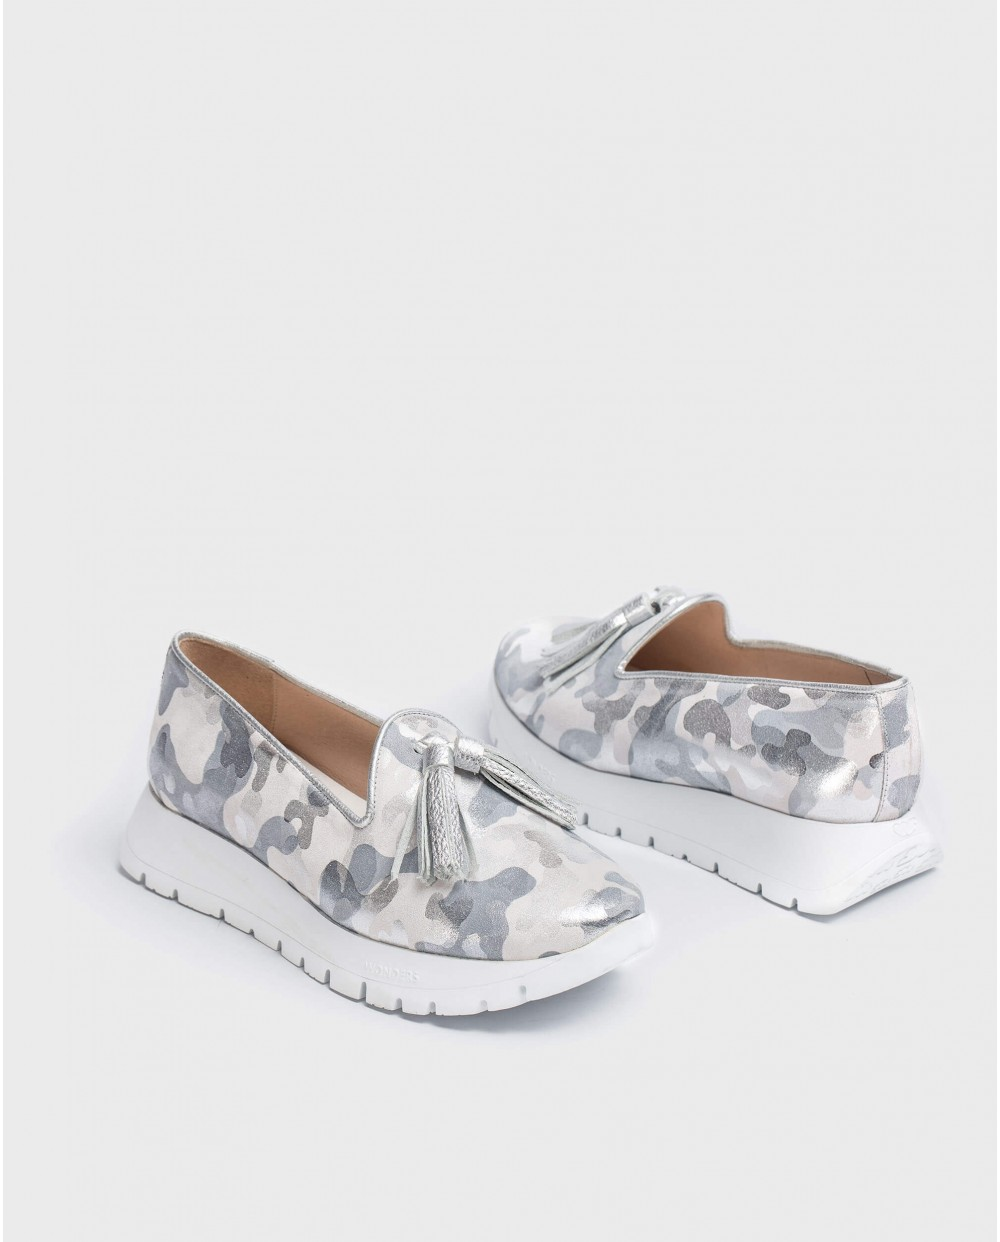 Wonders-Flat Shoes-Embossed leather moccasin